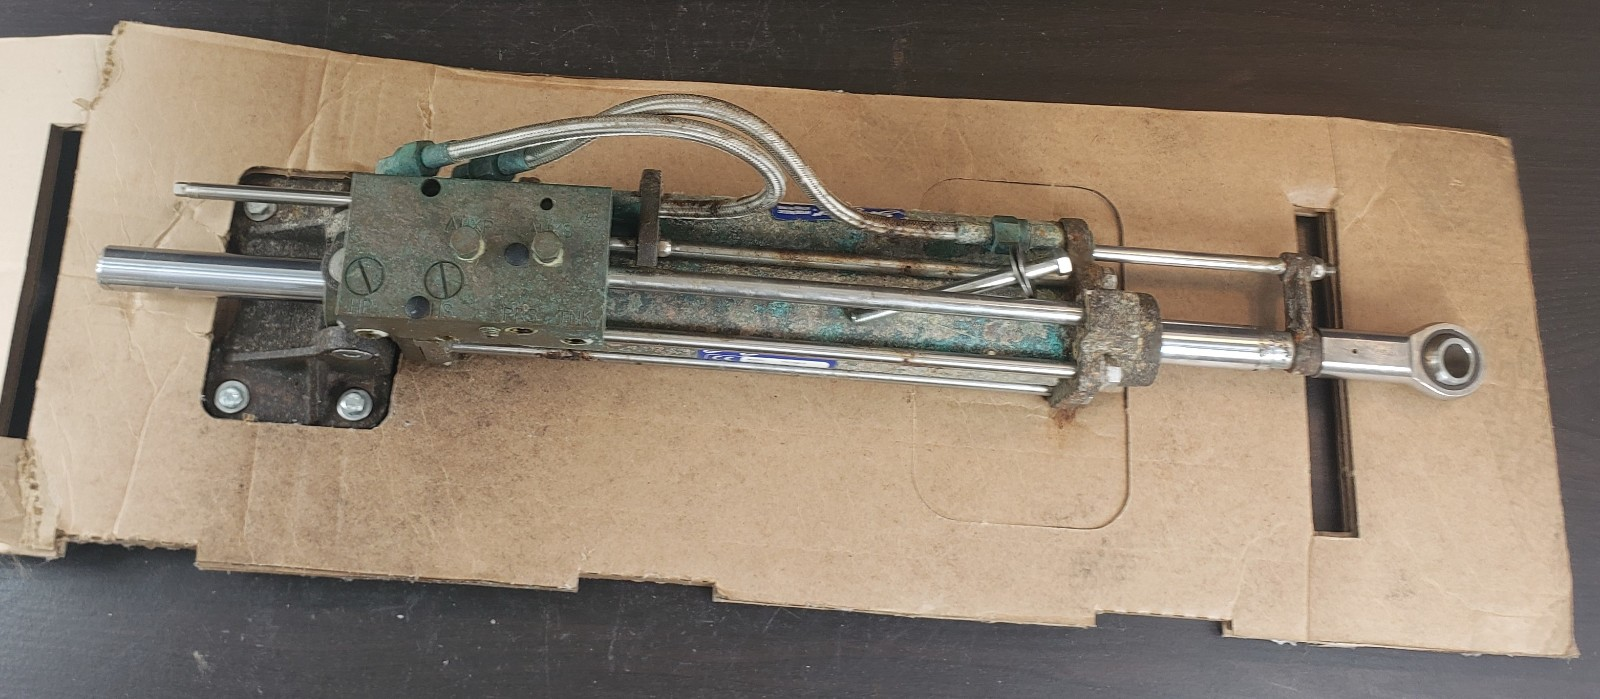 9SC200-9 HC5801 SeaStar Hydraulic Steering Cylinder FOR PARTS OR REPAIR